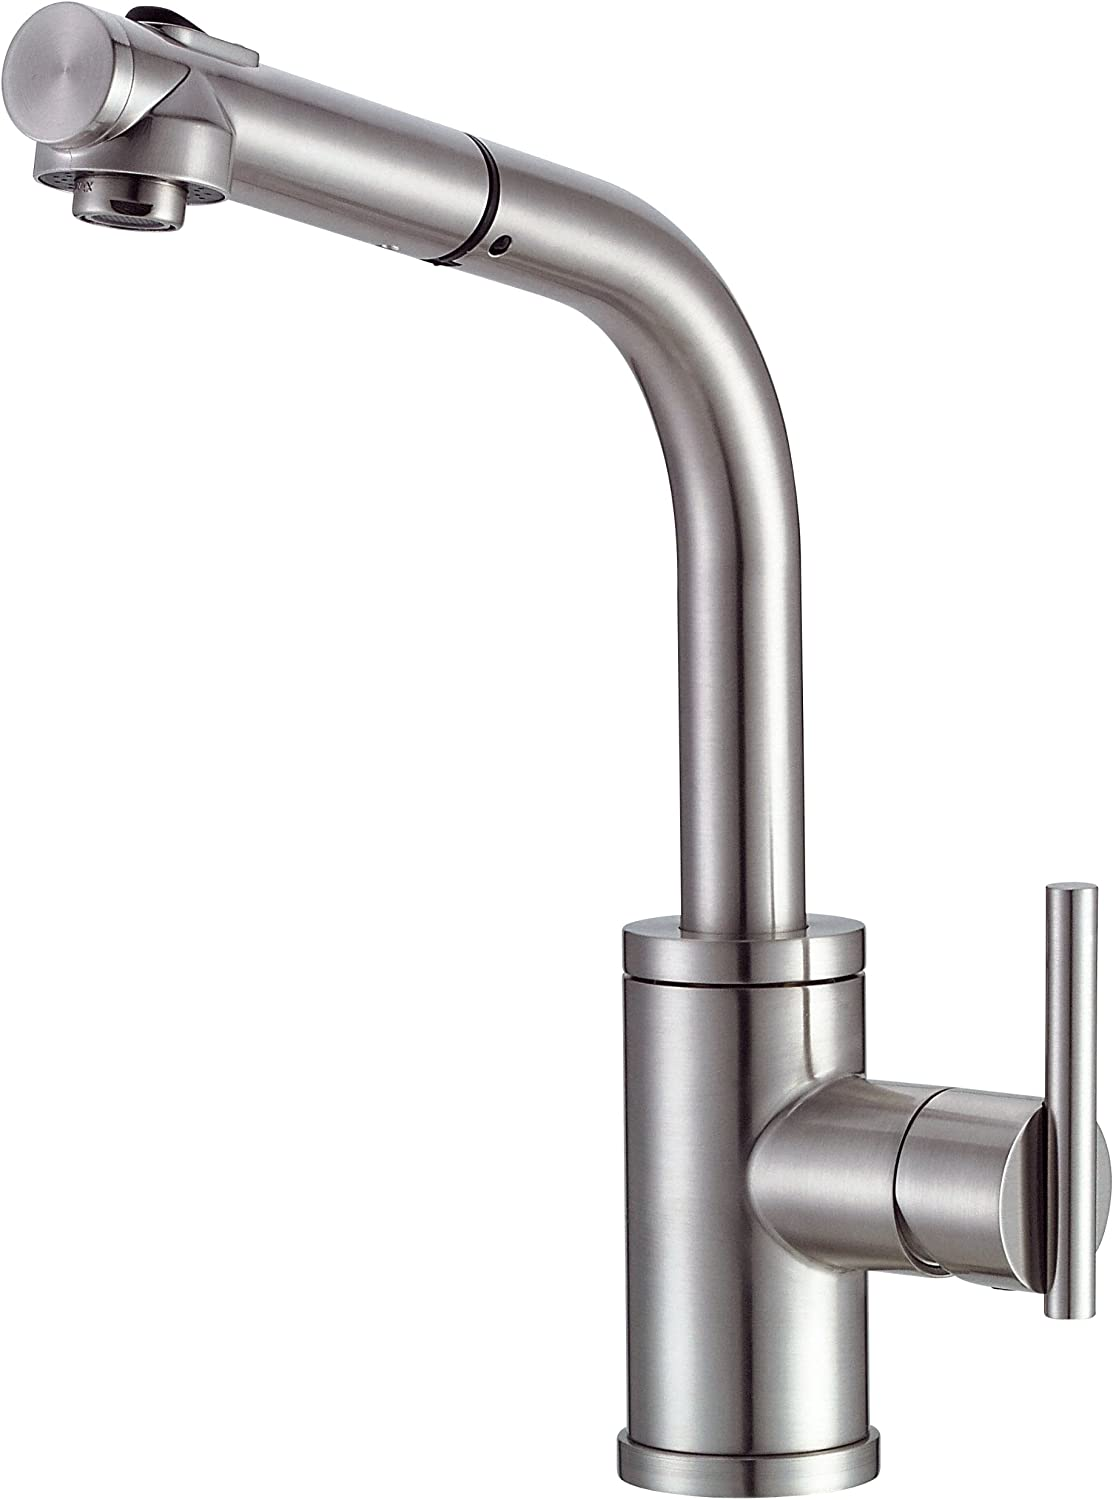 Danze D404058SS Parma Single Handle Pull-Out Kitchen Faucet with SnapBack Retraction, Stainless Steel